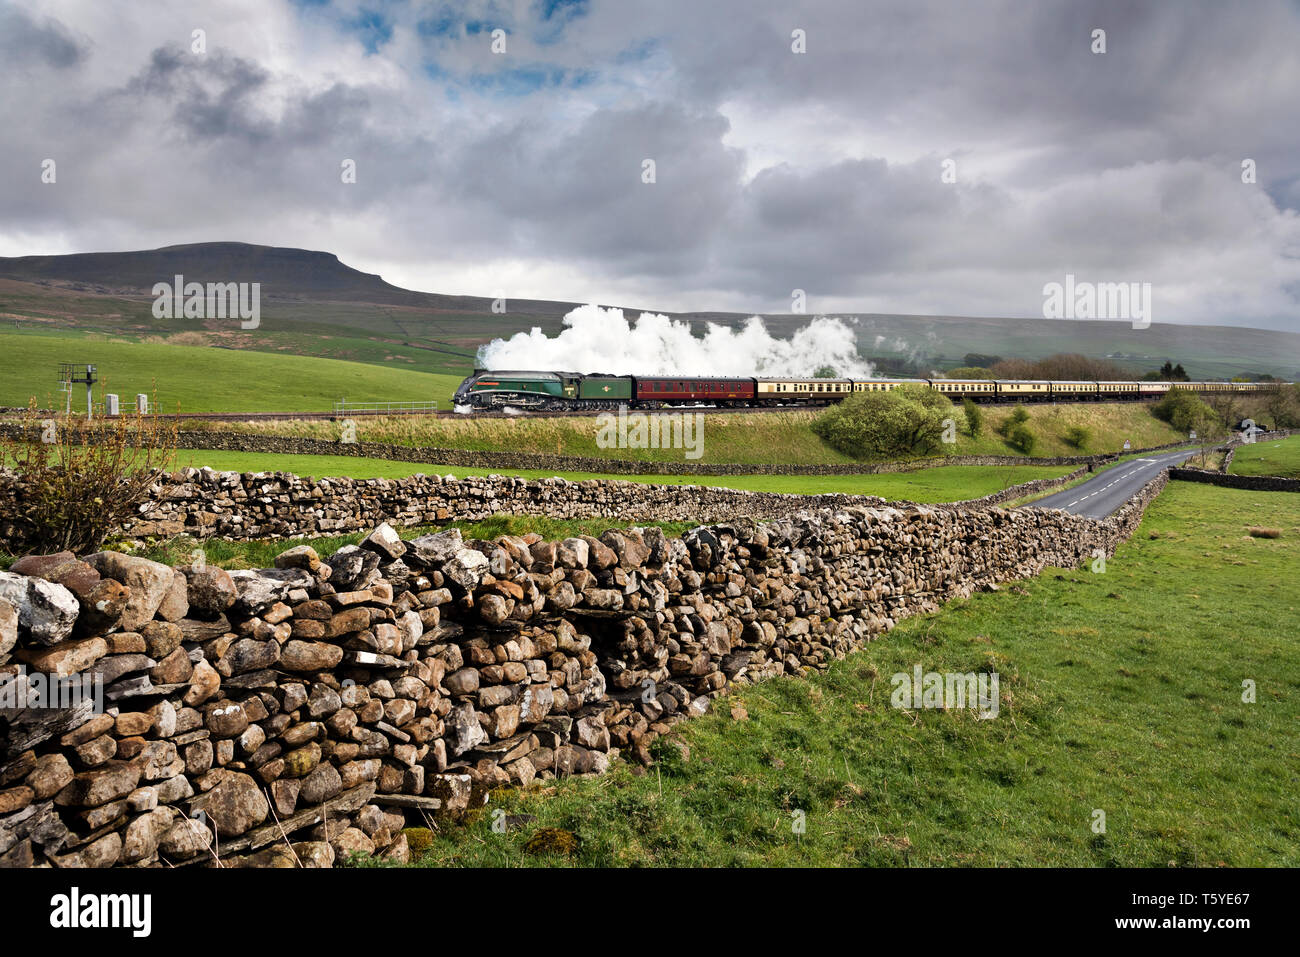 North Yorkshire, UK. 27th April 2019. A4 Class streamlined steam locomotive 'Union of South Africa' hauls a York to Carlisle special train on the Settle-Carlisle railway line, seen here at Horton-in-Ribblesdale in the Yorkshire Dales National Park. Credit: John Bentley/Alamy Live News - Stock Image